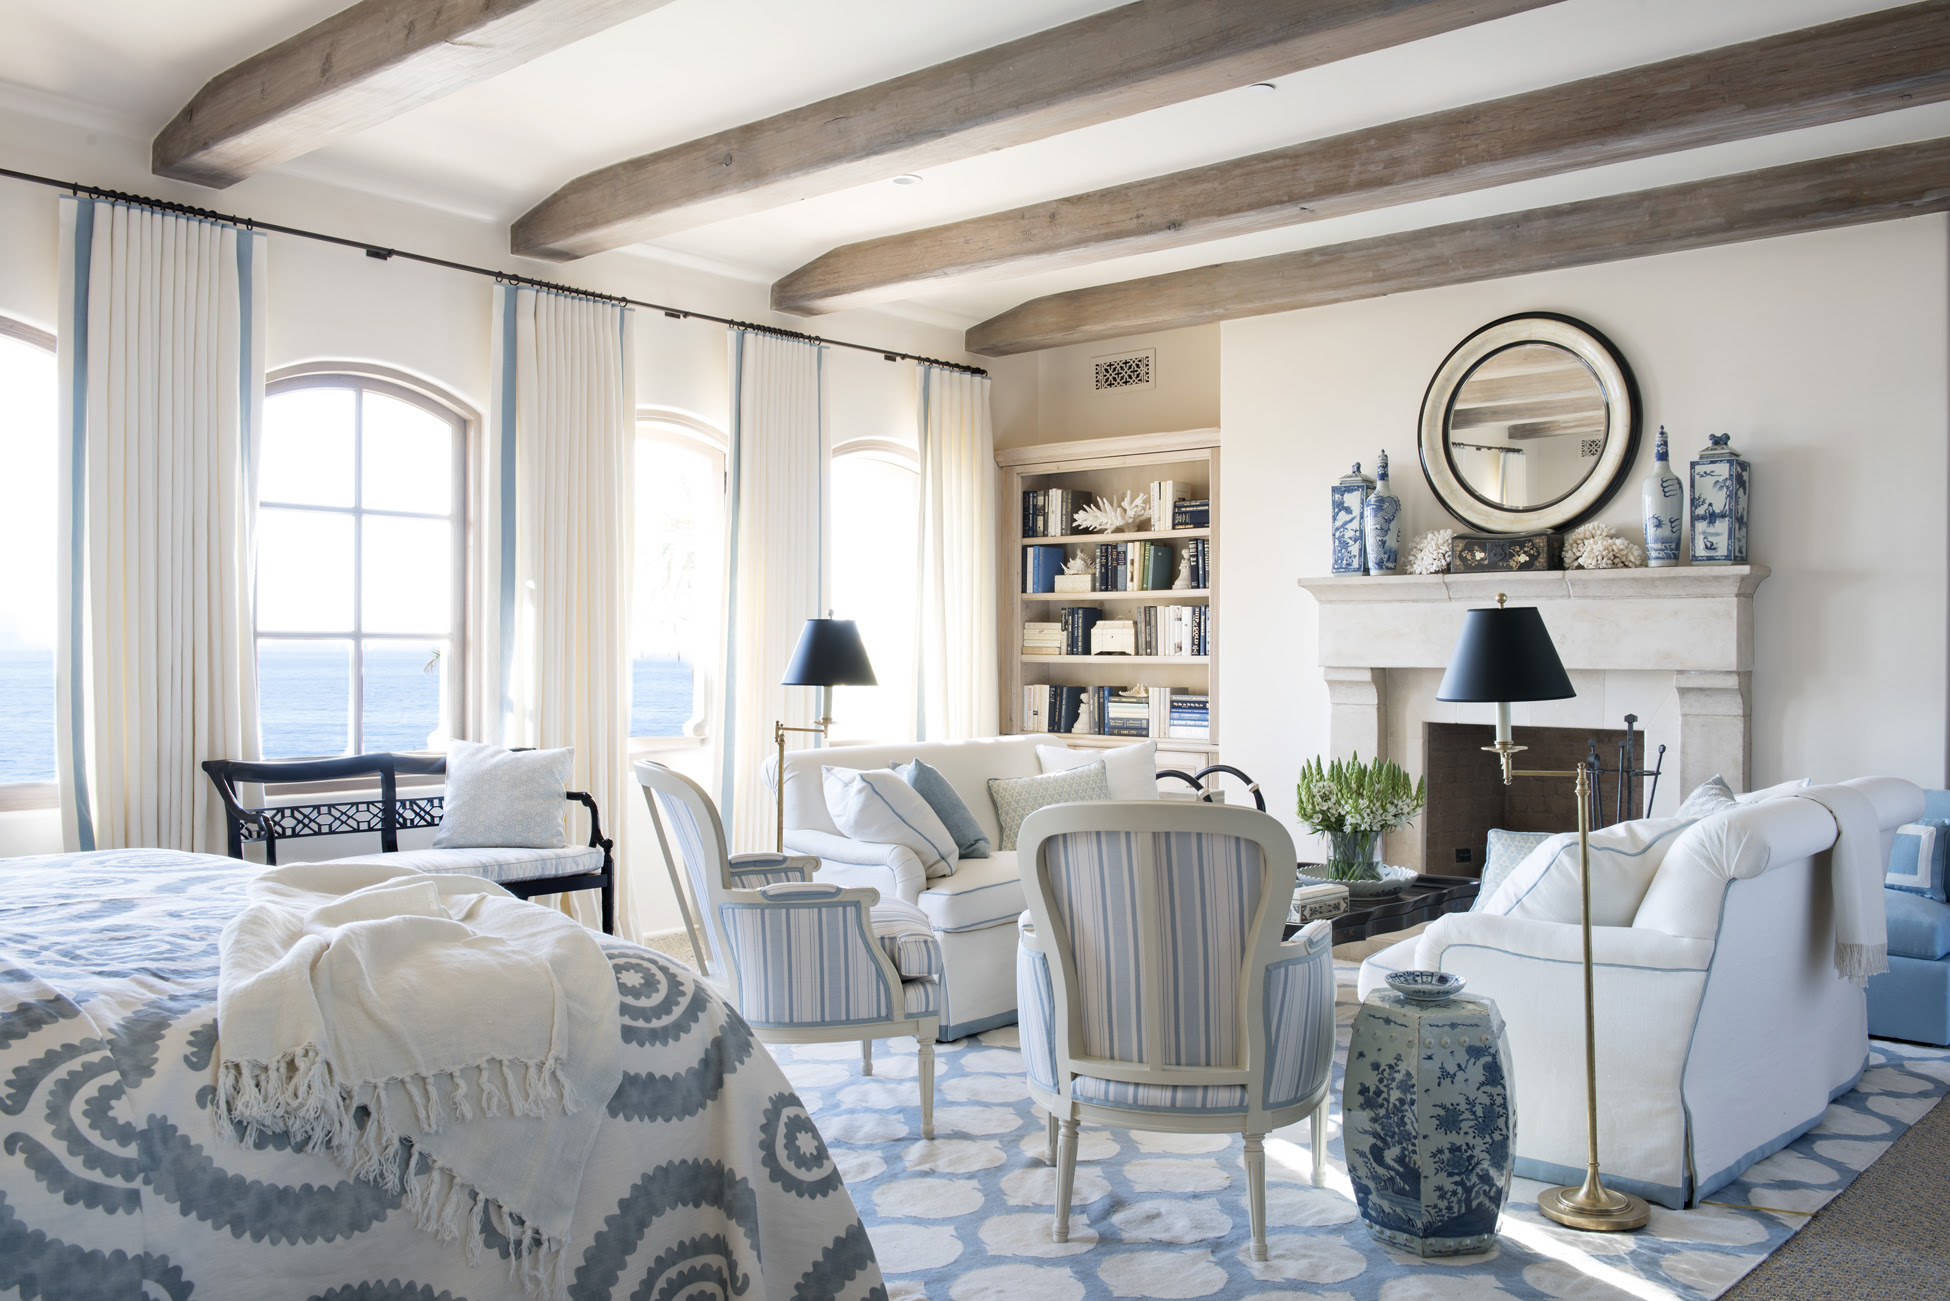 Blue and White Rooms - Decorating with Blue and White